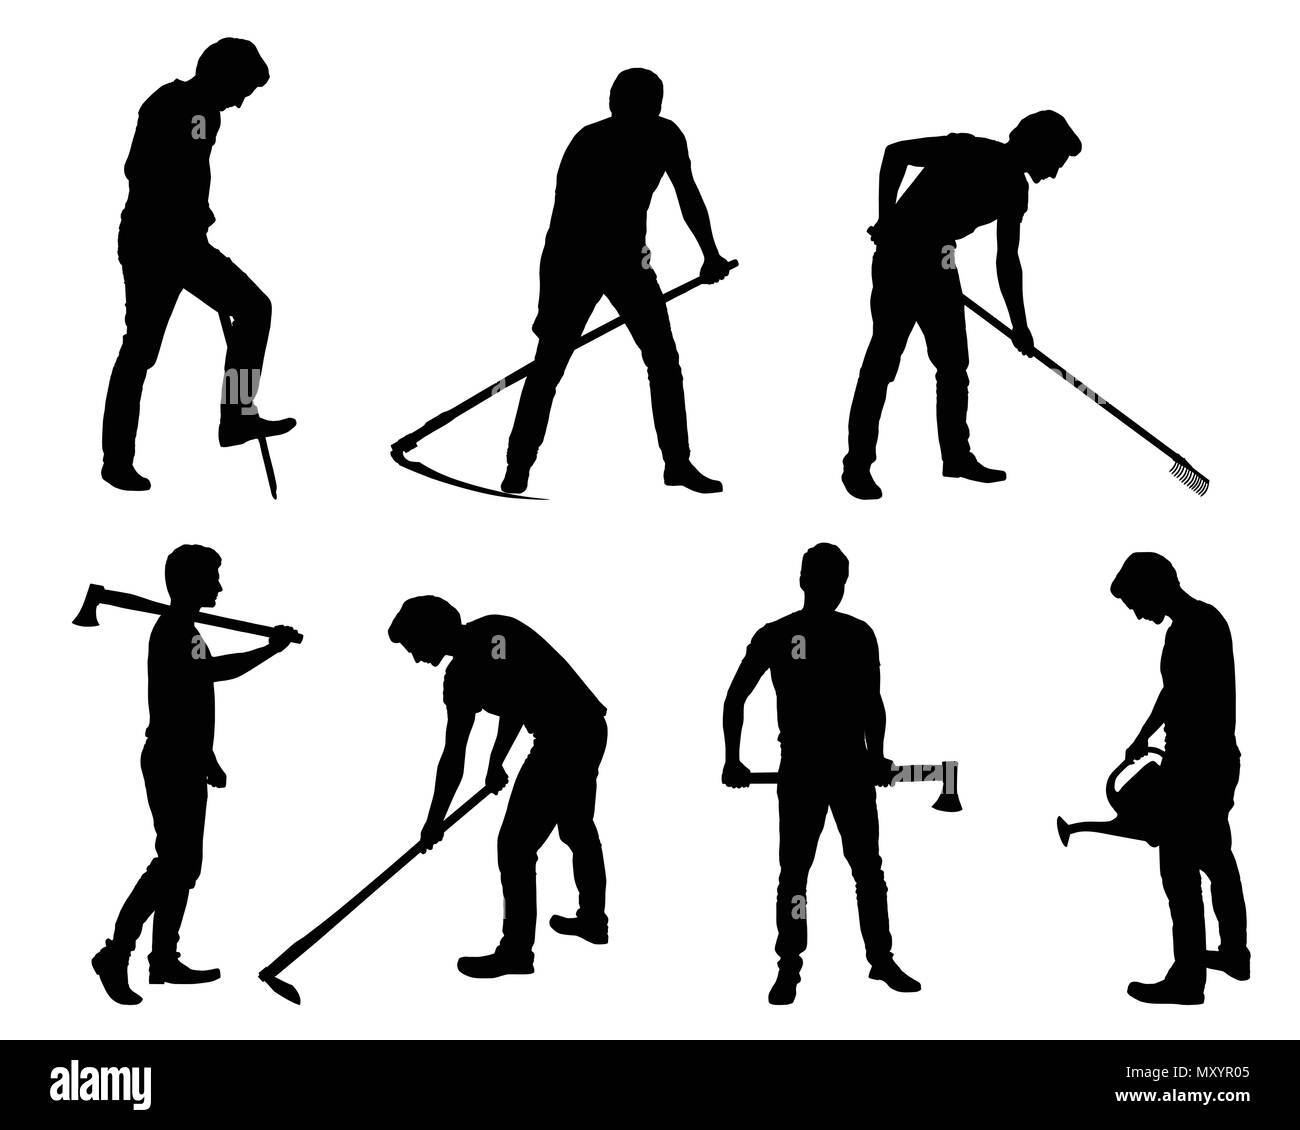 Set silhouette of young man - gardener or farmer with tools in different poses - vector Stock Vector